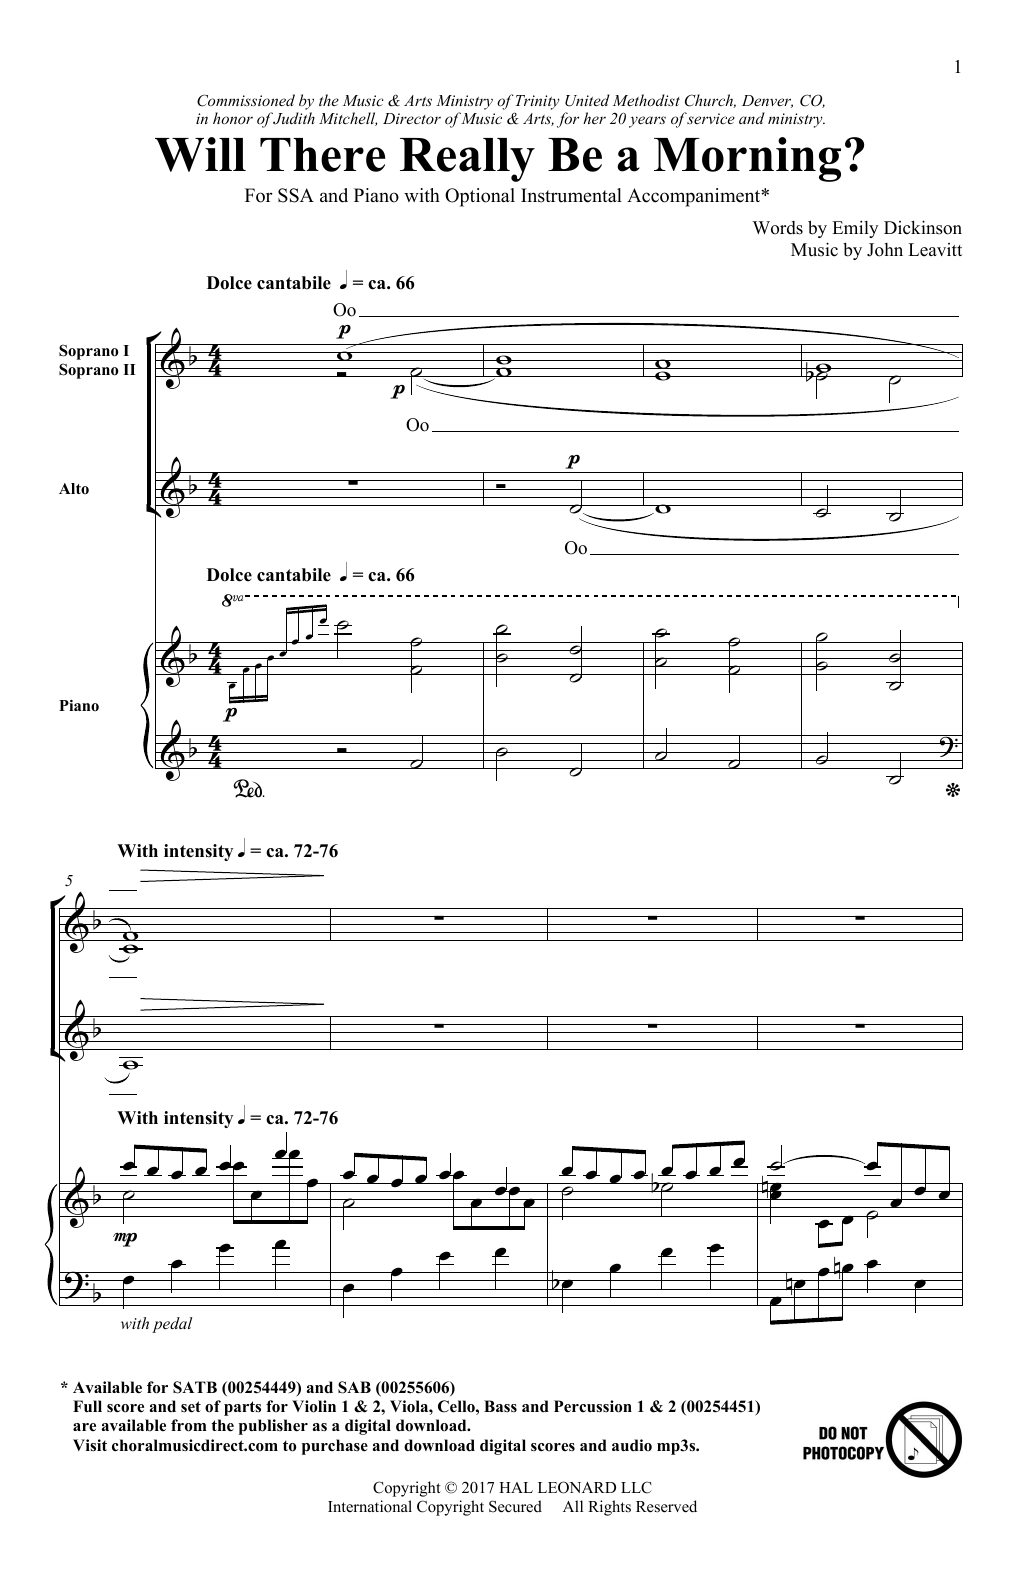 Will There Really Be A Morning? Sheet Music